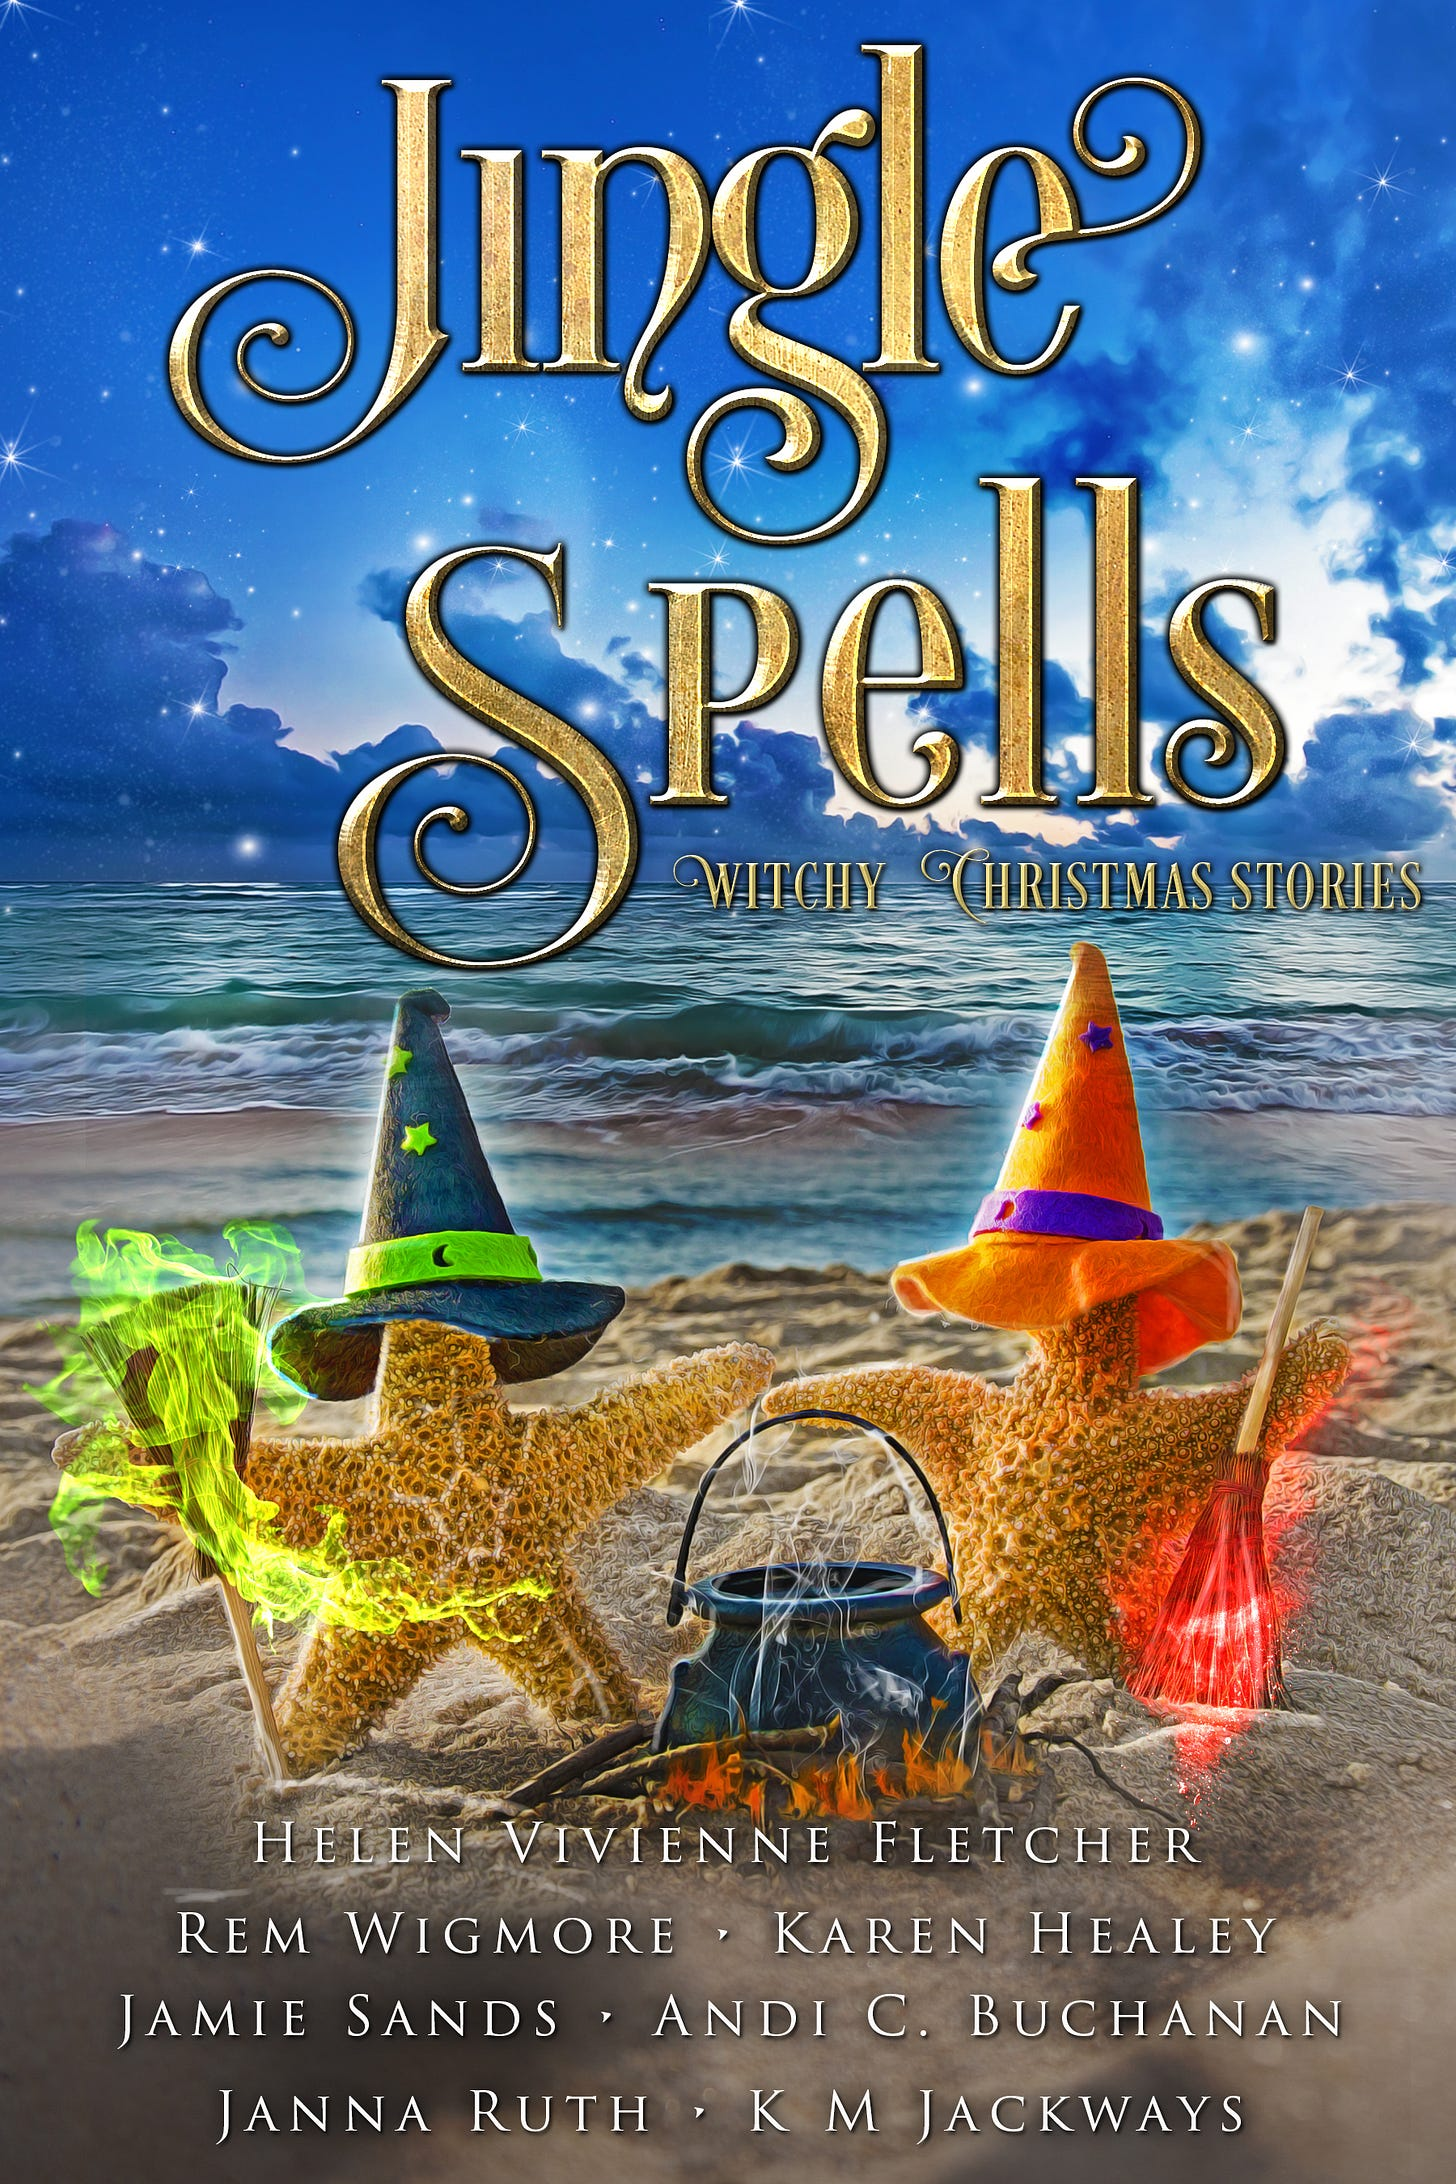 Cover of Jingle Spells - a beach scene with two starfish dressed up as witches with a cauldron